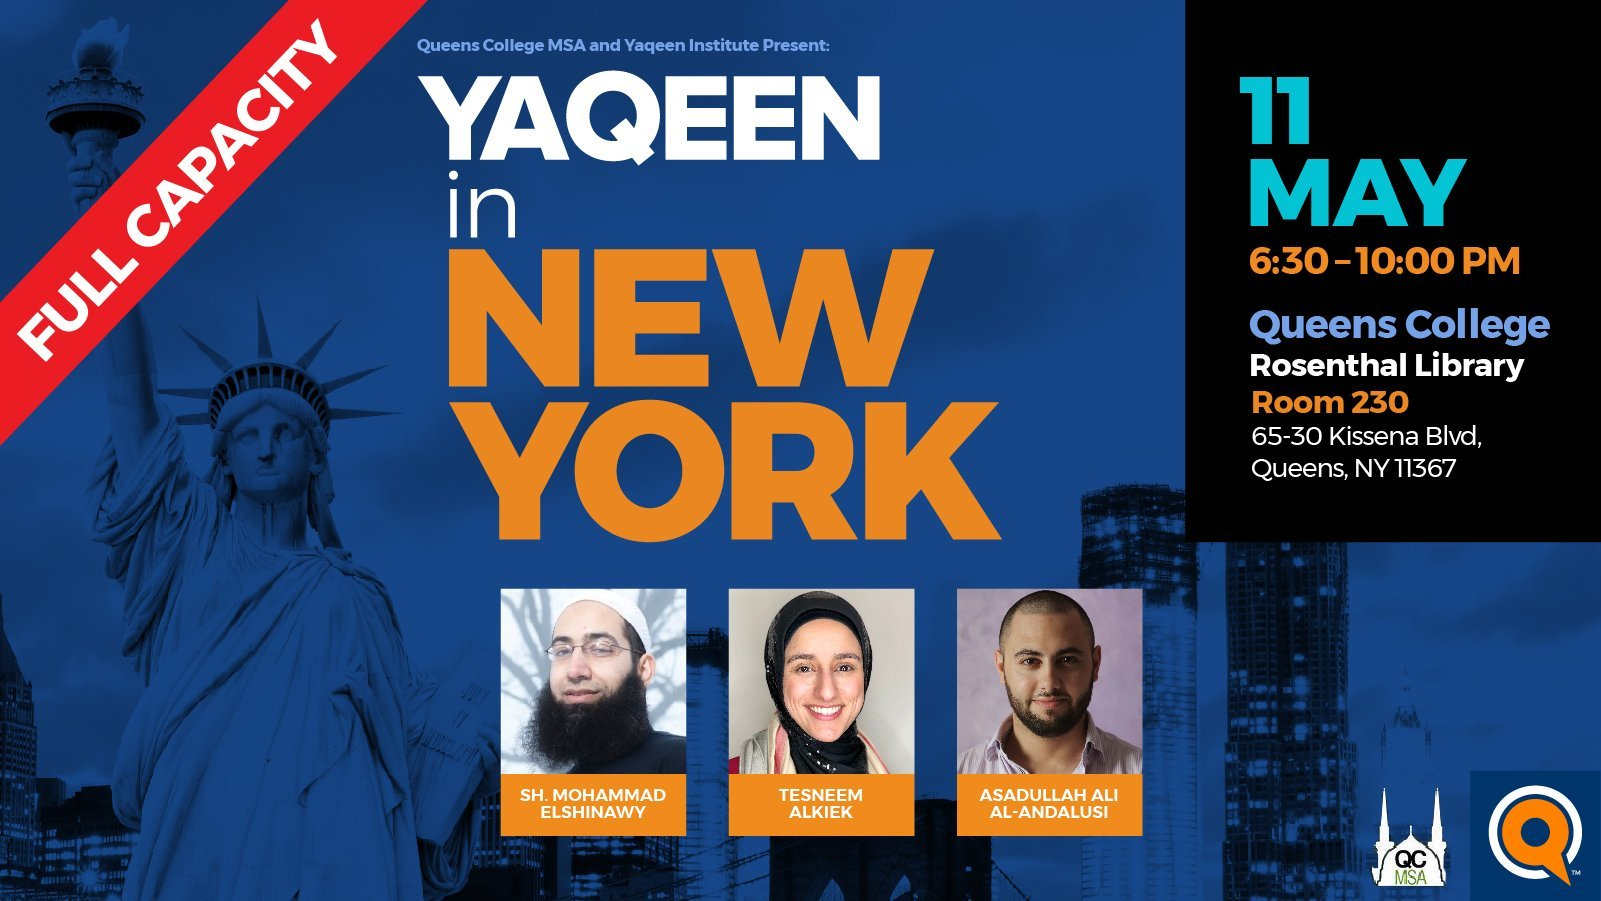 Yaqeen in New York